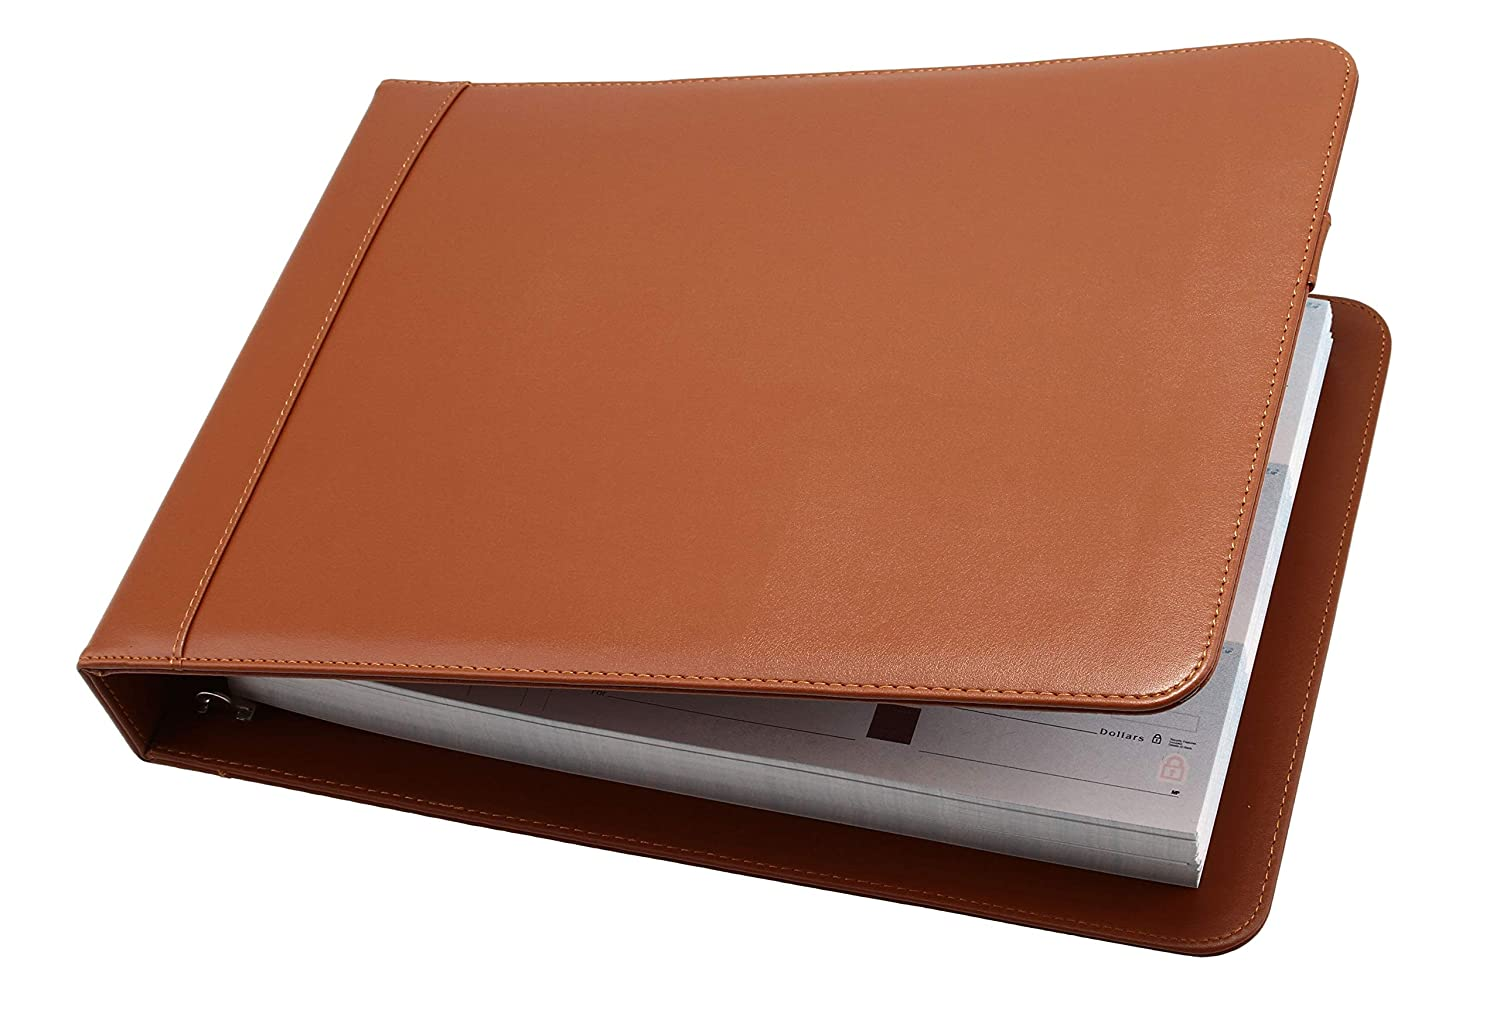 Red Business Check 7 Ring Binder for 3-Up Checks PU Leather Portfolio Checkbook Cover with Built in Storage Organizer